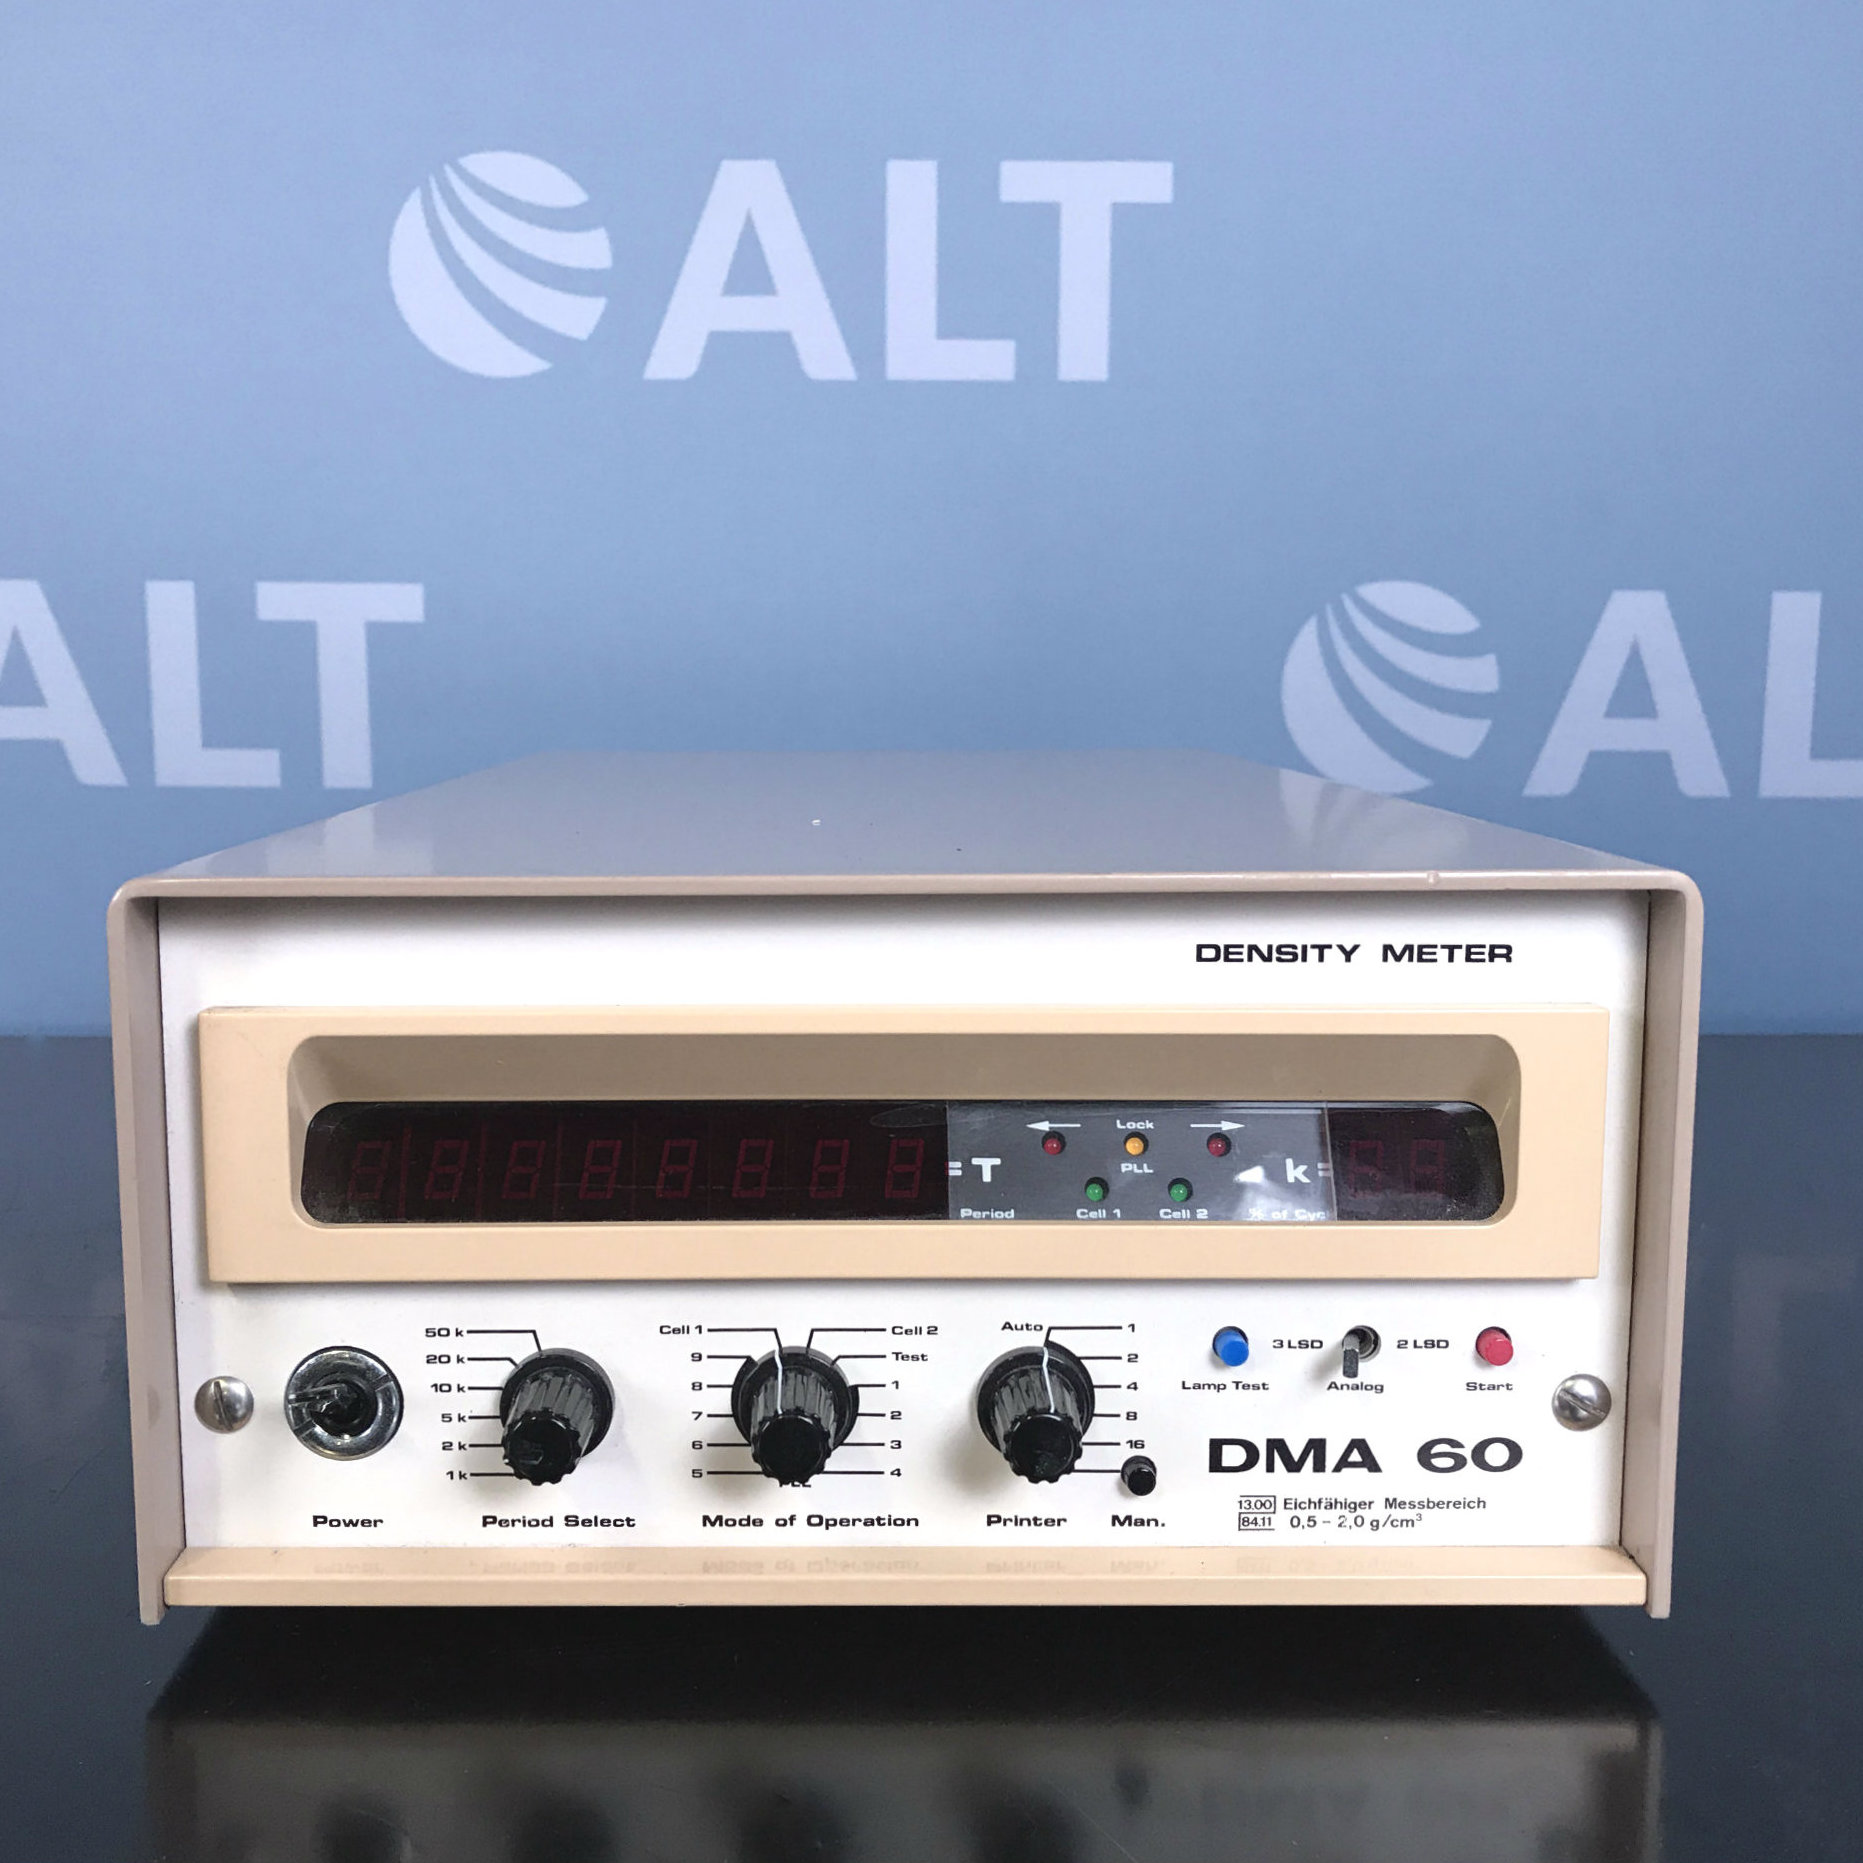 DMA 60 Density Meter Name